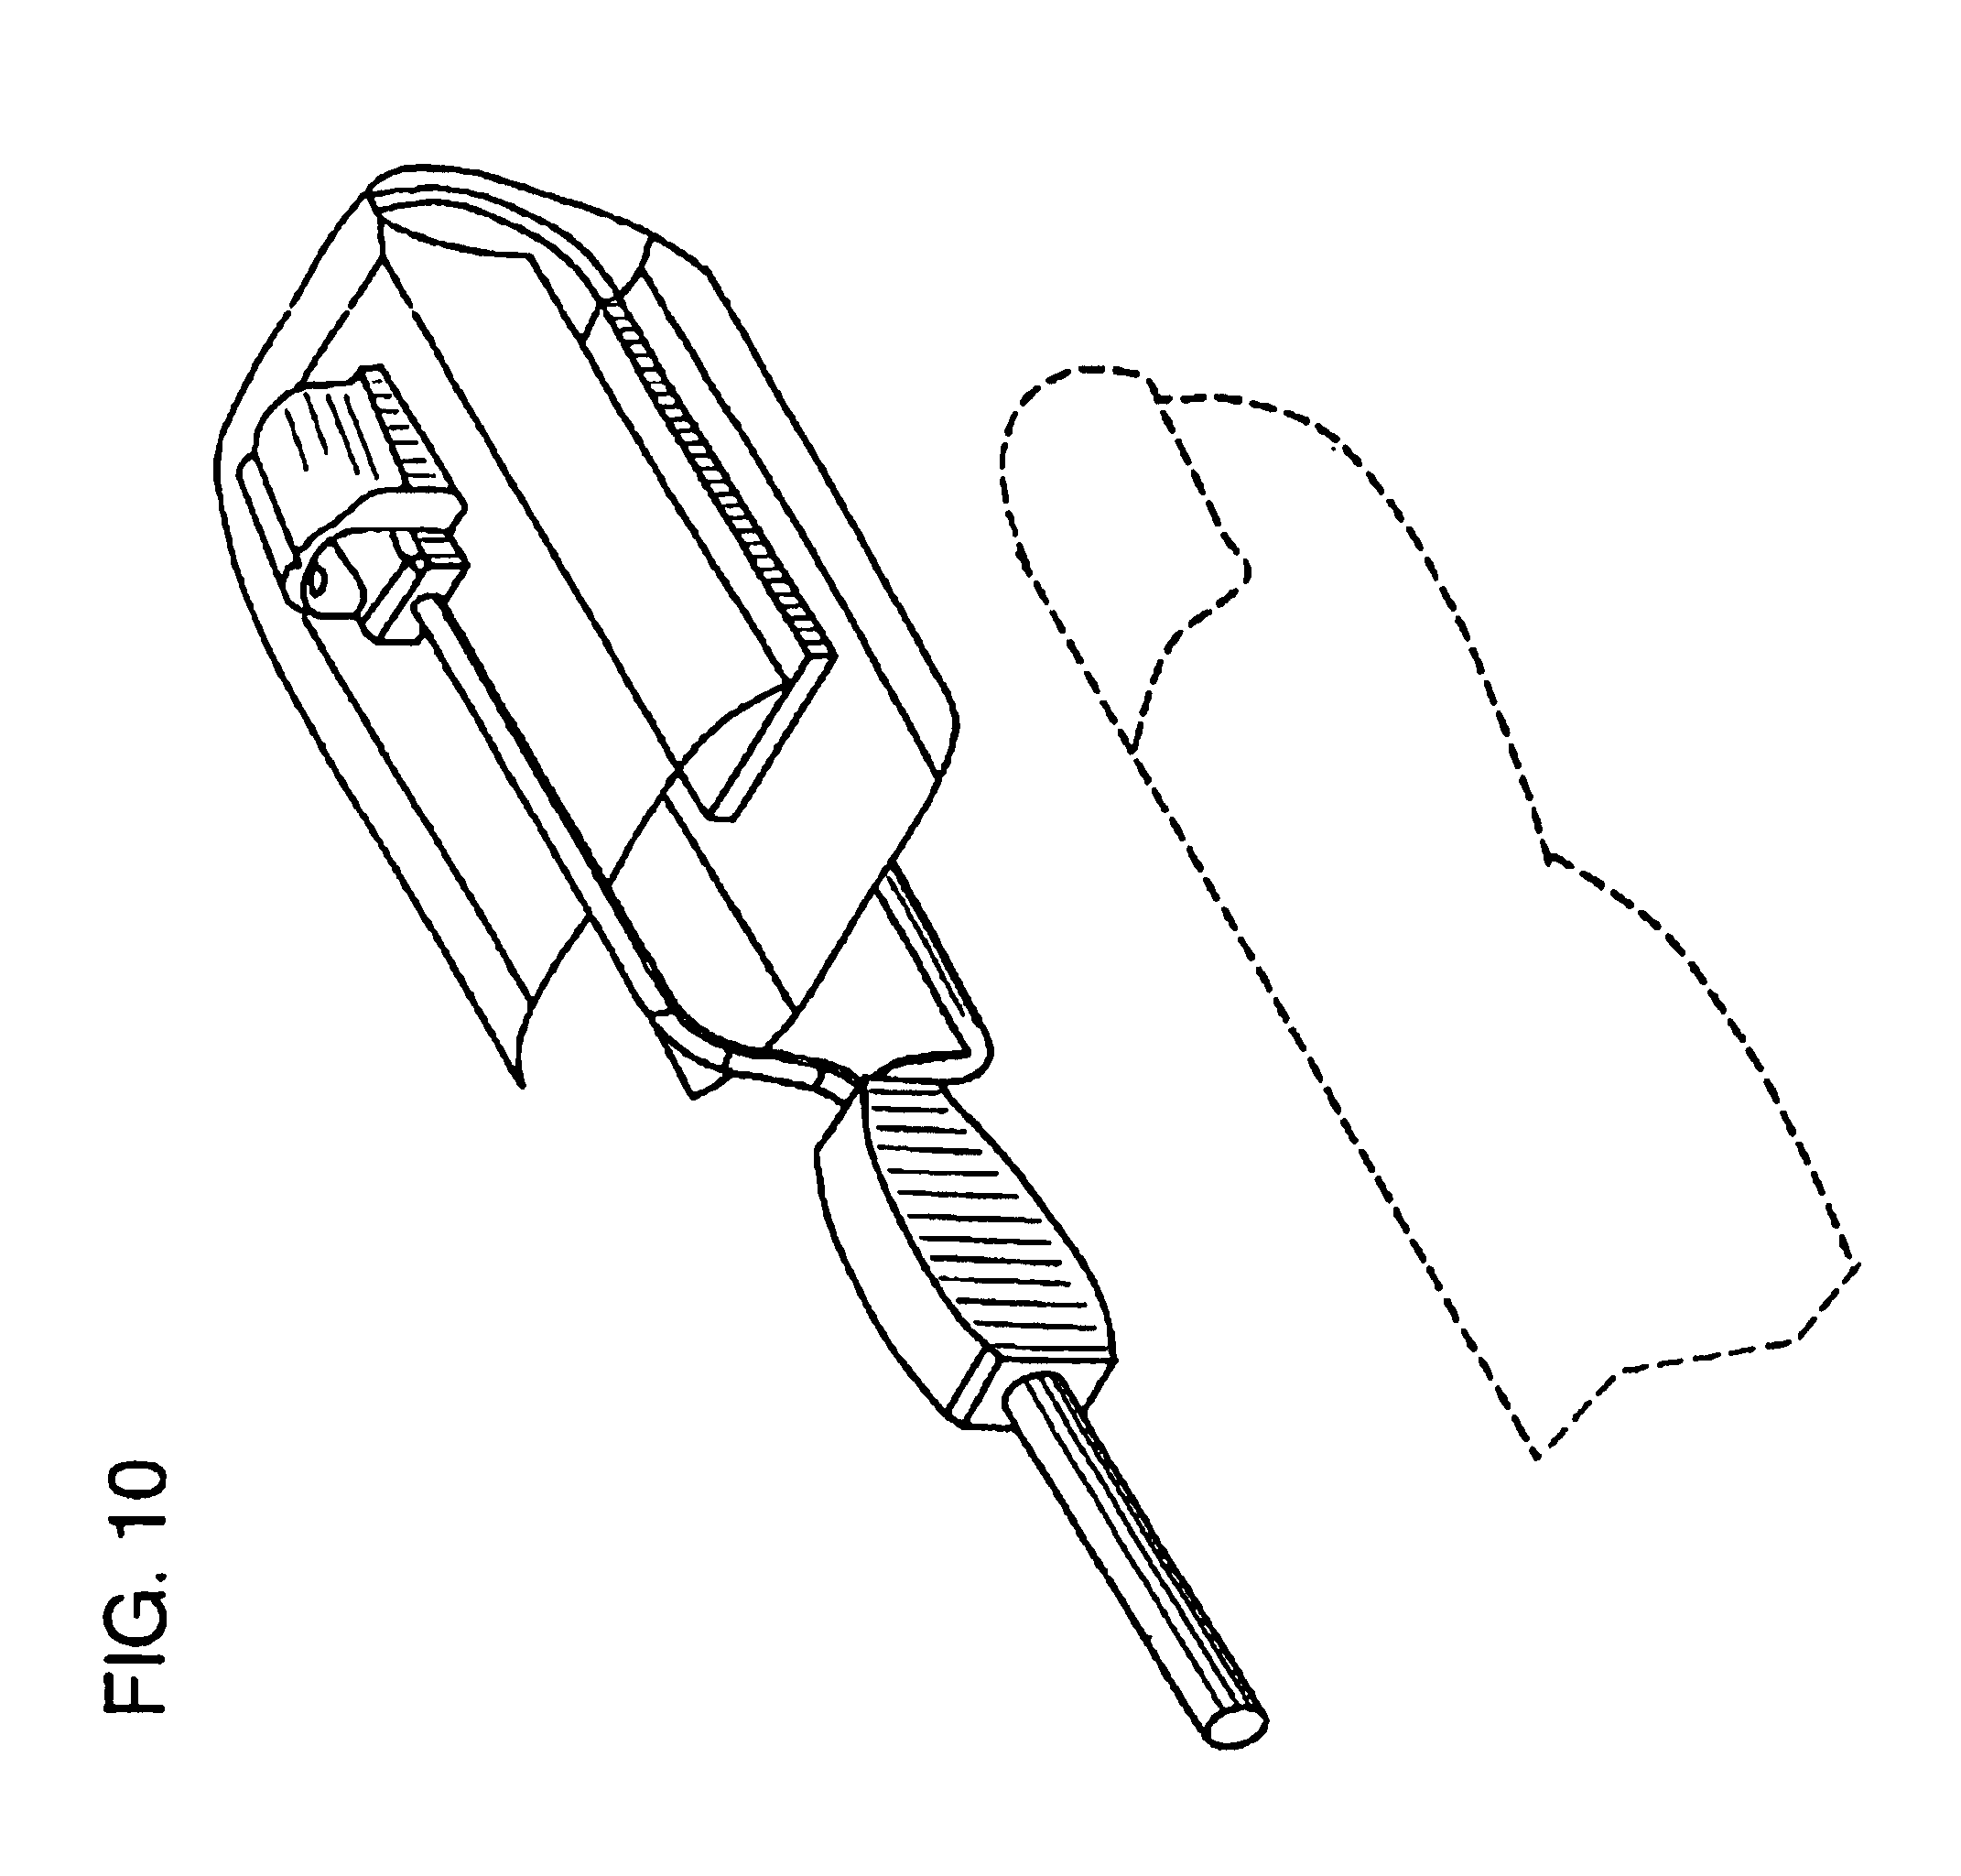 patent usre41912 - reusable pulse oximeter probe and disposable bandage apparatus